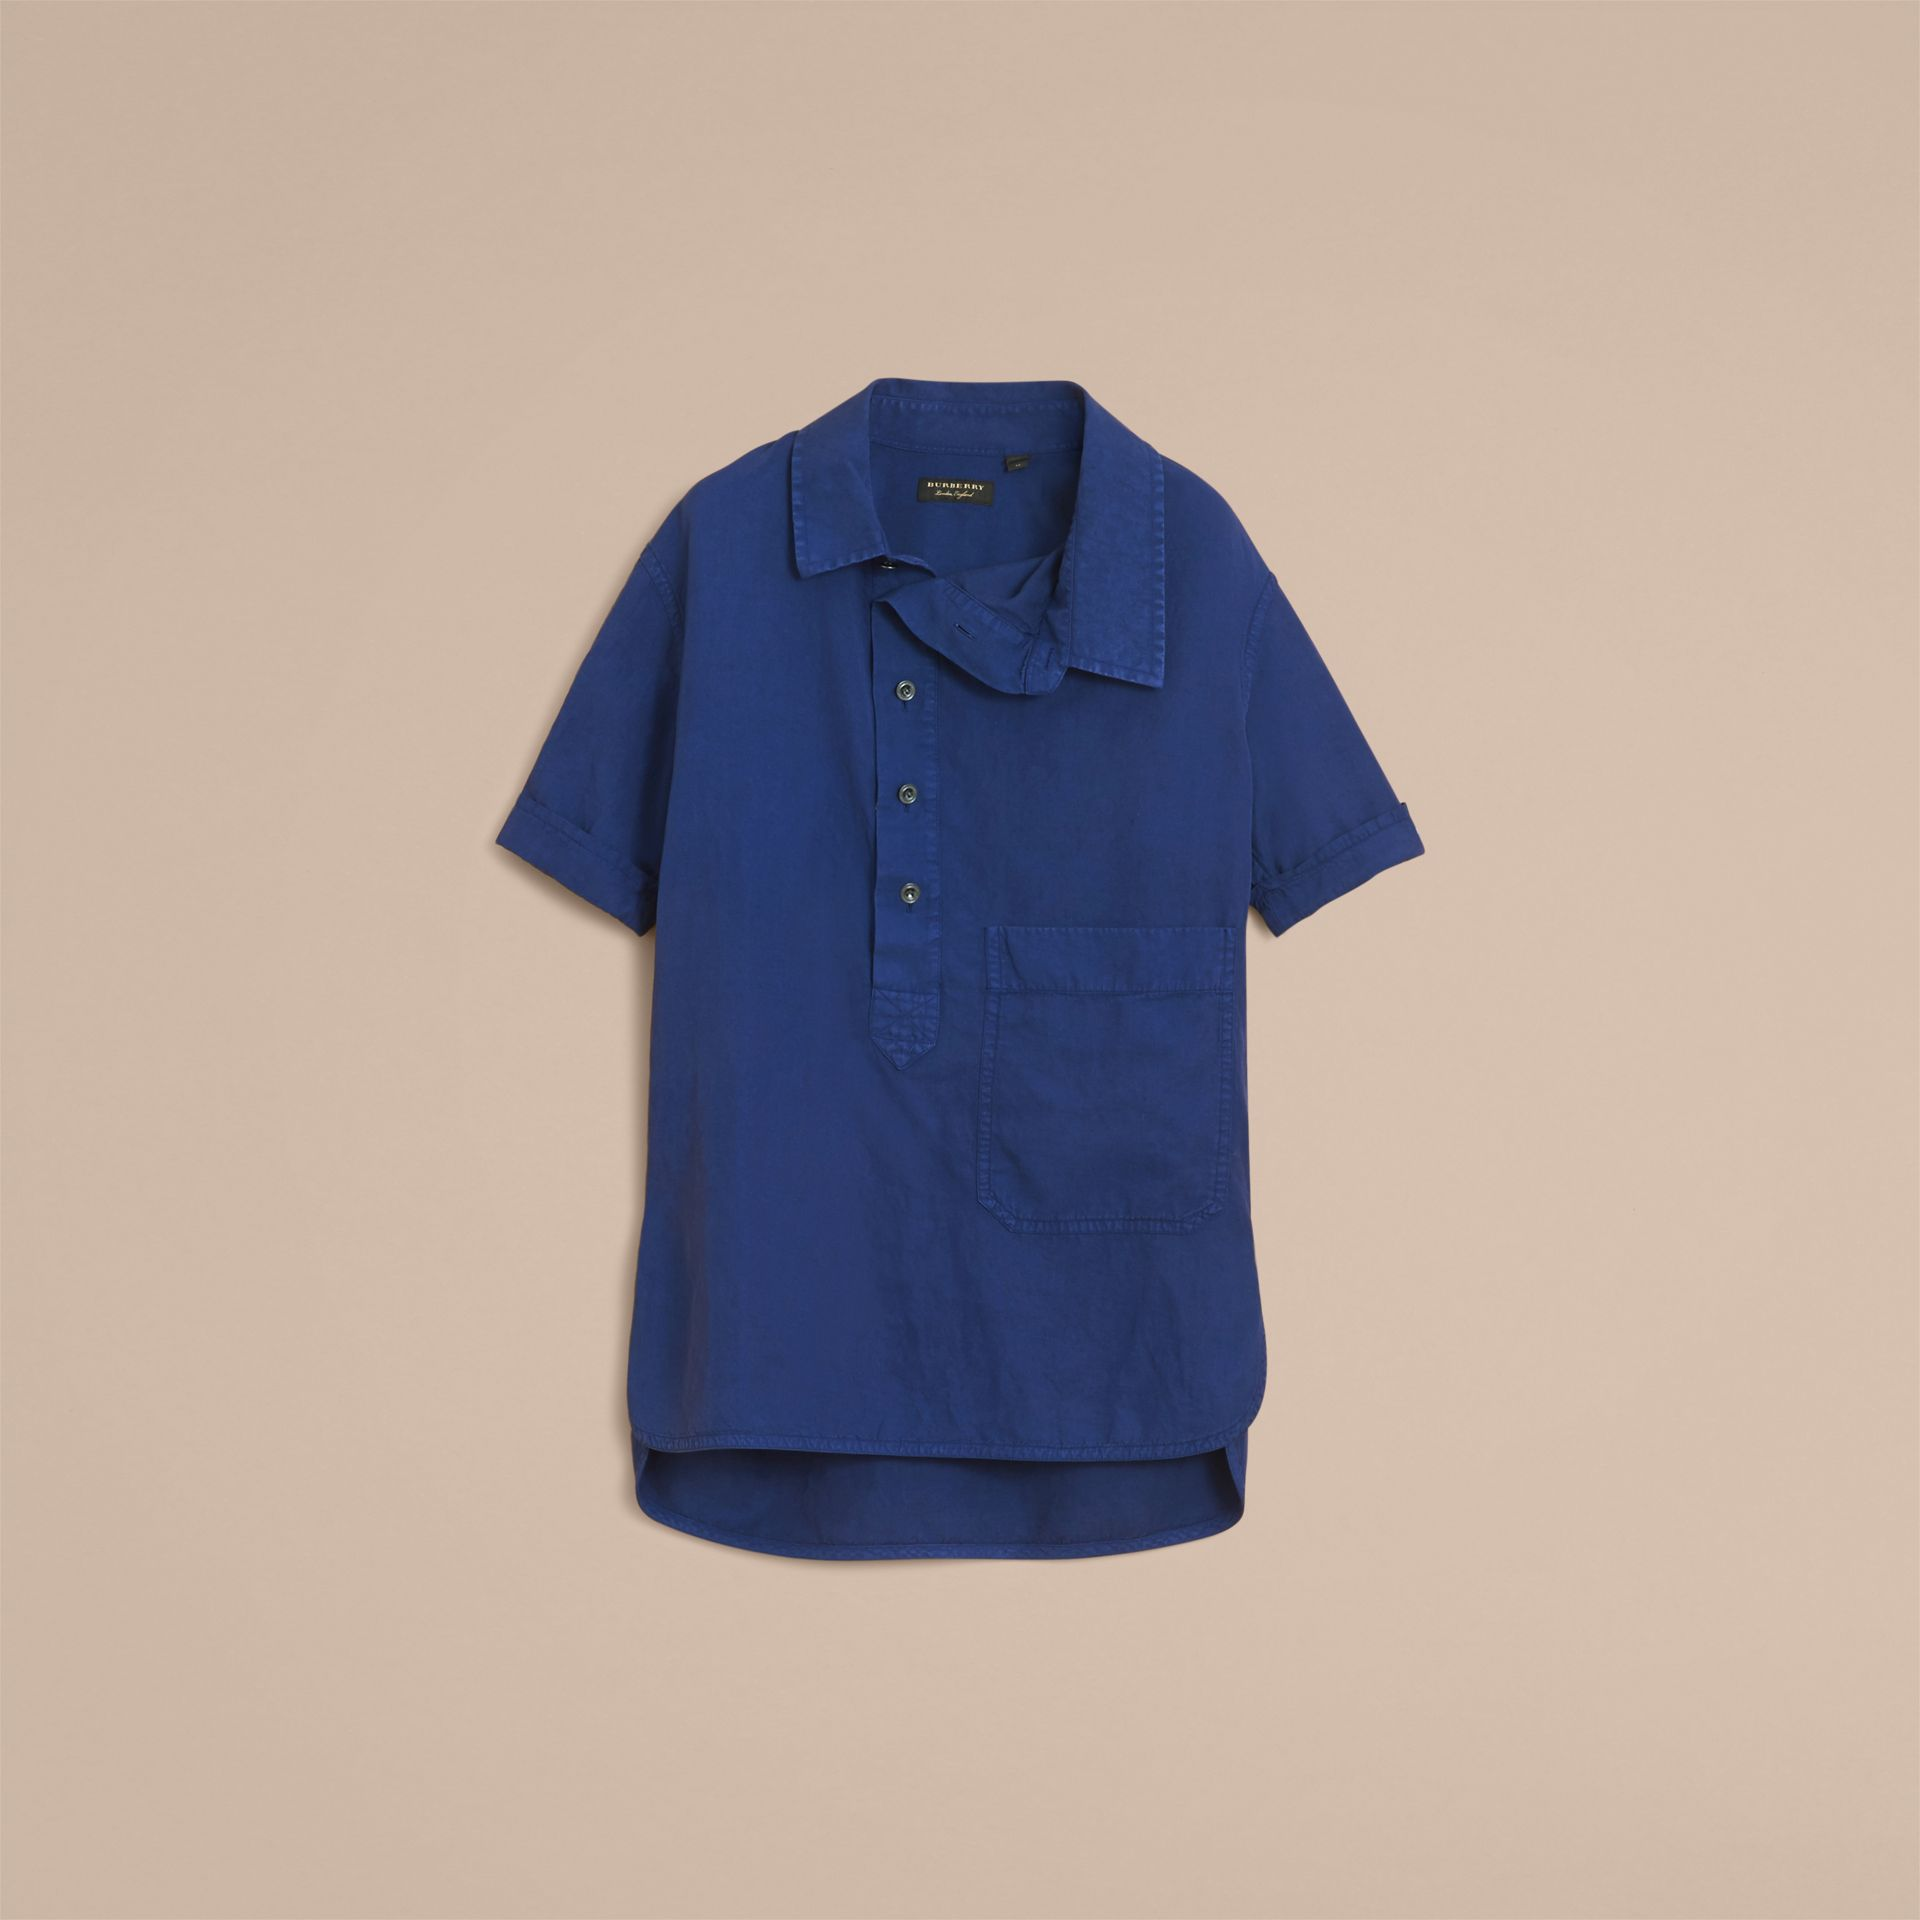 Unisex Short-sleeve Lyocell Linen Cotton Smock Shirt in Dark Blue - Men | Burberry - gallery image 4